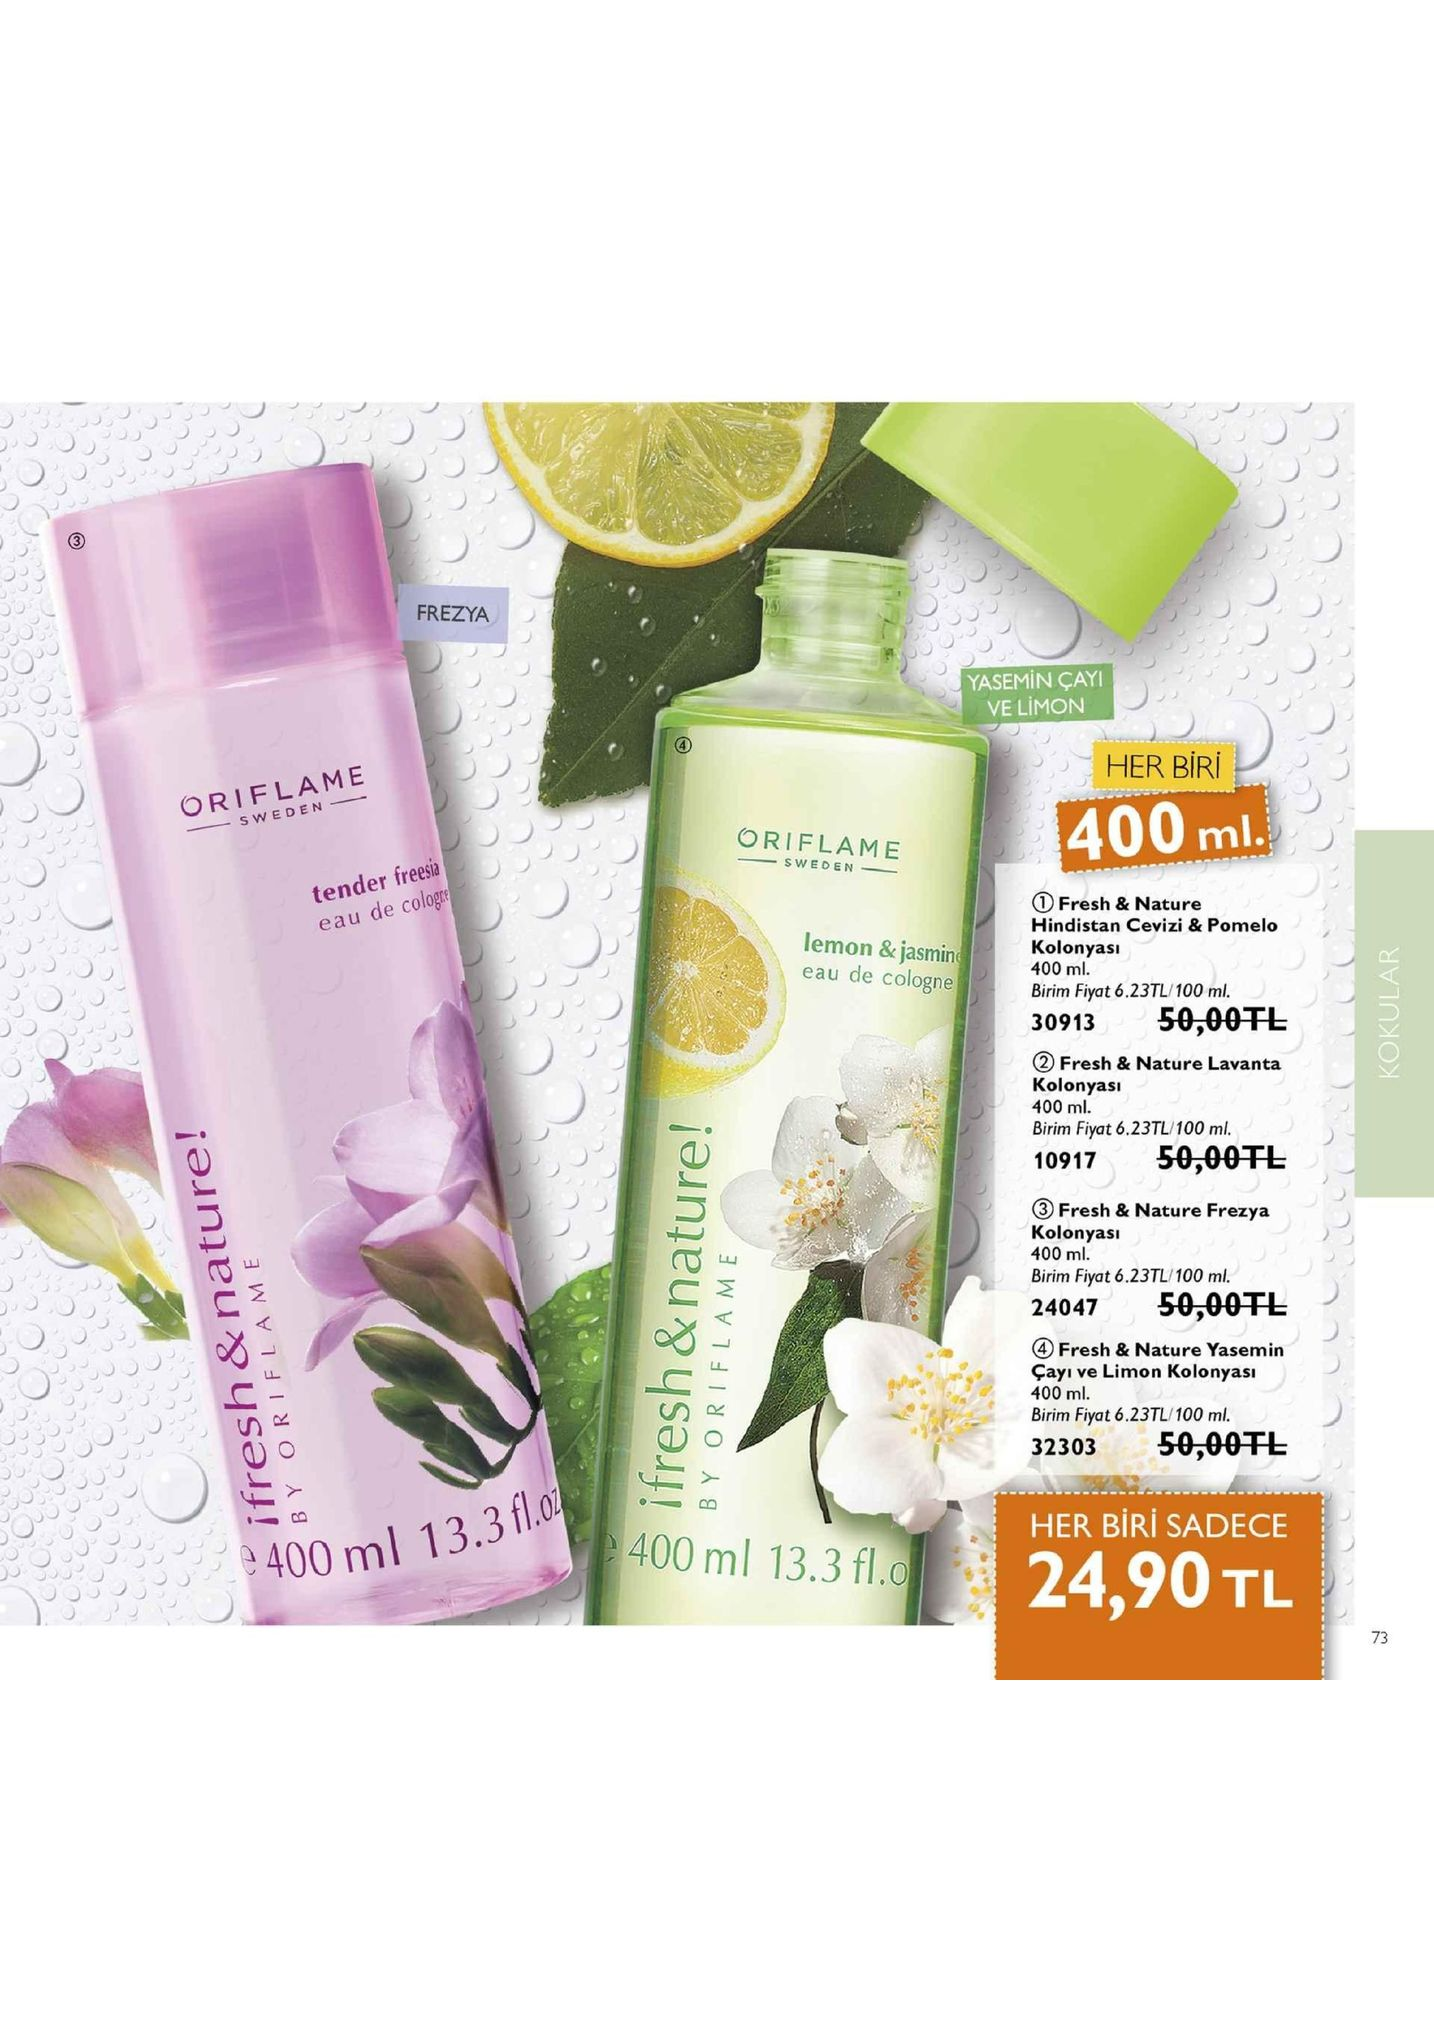 frezya yasemin çayi ve limon her biri oriflame 400 ml oriflame tender freesia eau de cologte ① fresh & nature hindistan cevizi & pomelo kolonyasi 400 ml birim fiyat 6.23tl/100 ml. 3091350-00tl lemon & jasmin eau de cologne ② fresh & nature lavanta kolonyasi 400 ml. birim fiyat 6.23tl/100 ml. 1091750-00tl ③ fresh & nature frezya kolonyası 400 ml birim fiyat 6.23tl/100 ml. 24047 50,00干し ④ fresh & nature yasemin cayı ve limon kolonyası 400 ml. birim fiyat 6.23tl/100 ml. 32303 50,00干し her biri sadece 400 ml 13.3 fl 9400 ml 13.3 fl. 24,90 tl 01. 73